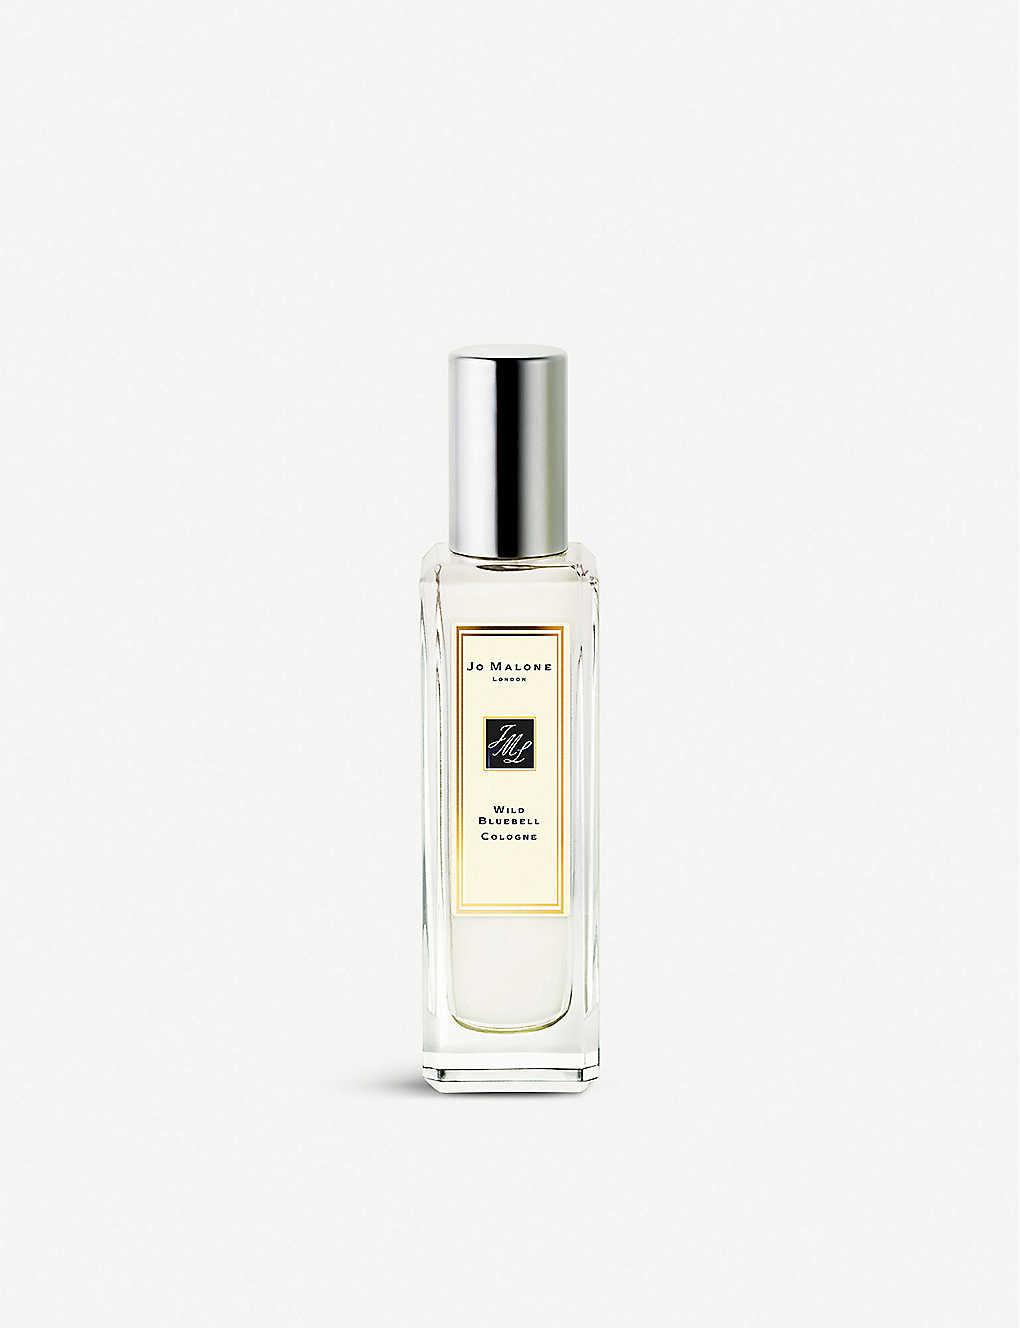 JO MALONE LONDON:Wild Bluebell 古龙水 30 毫升